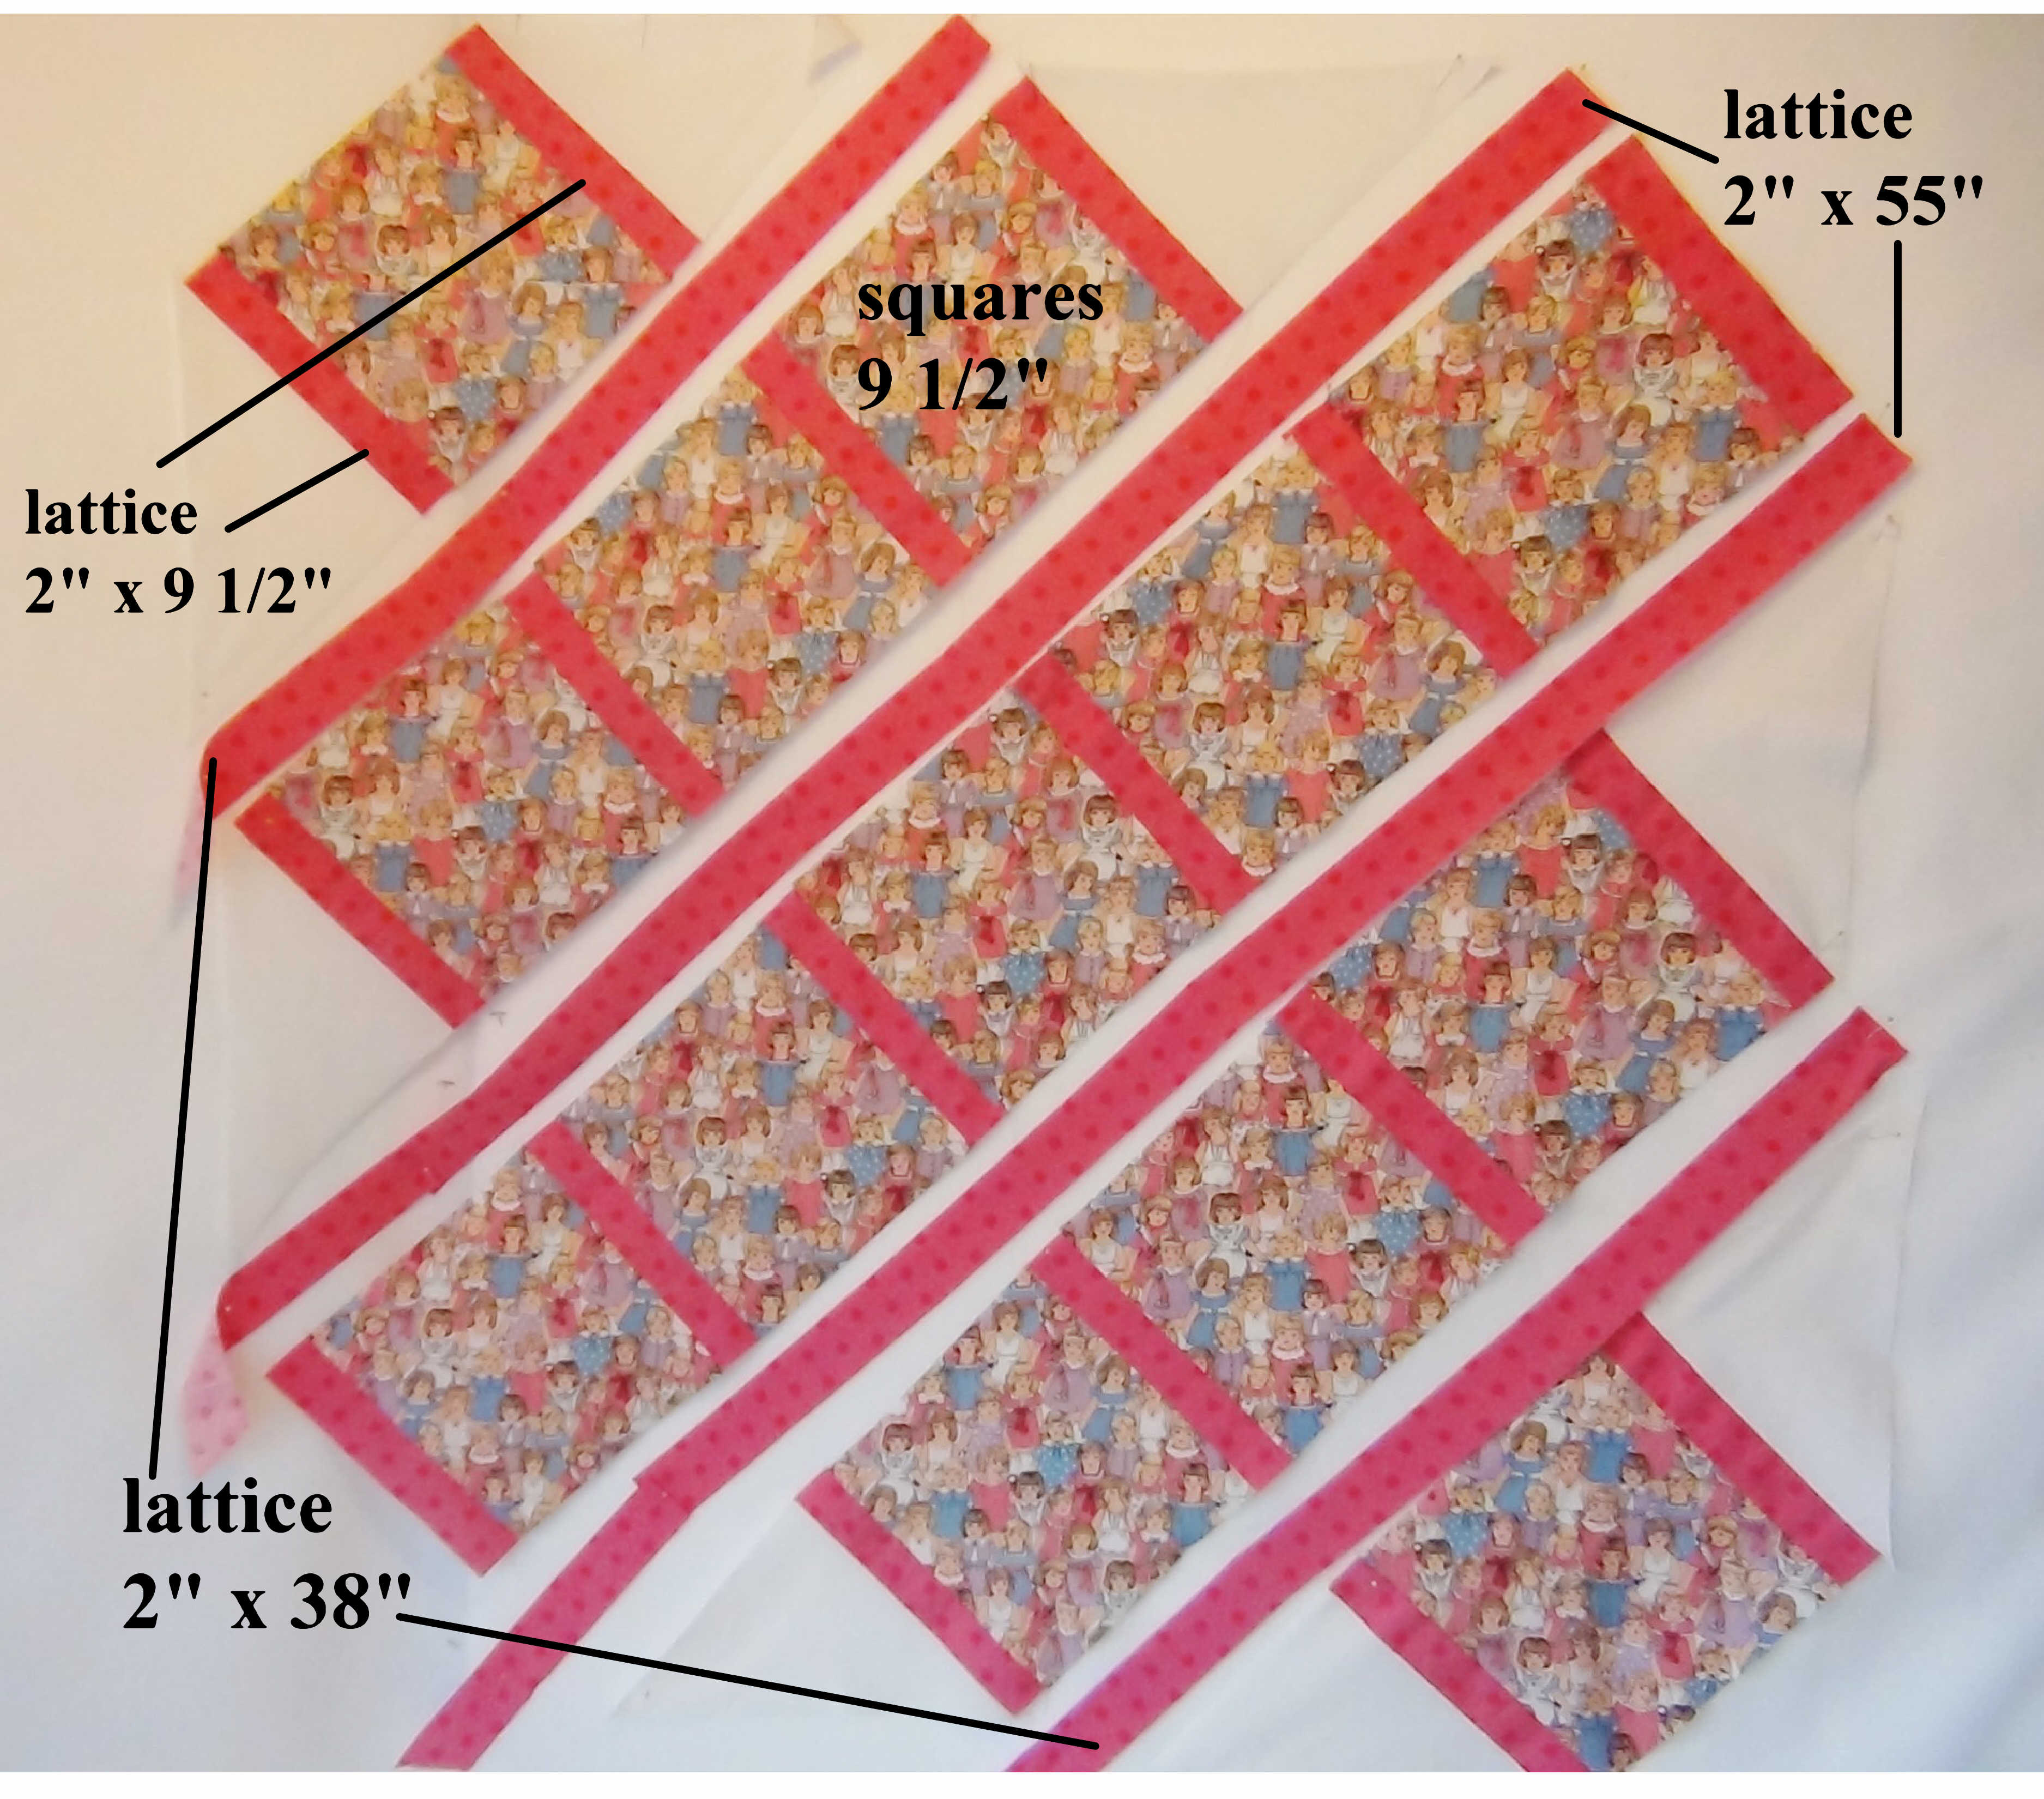 My Dolly Lattice Quilt With Treasured Vintage Look Doll Fabric